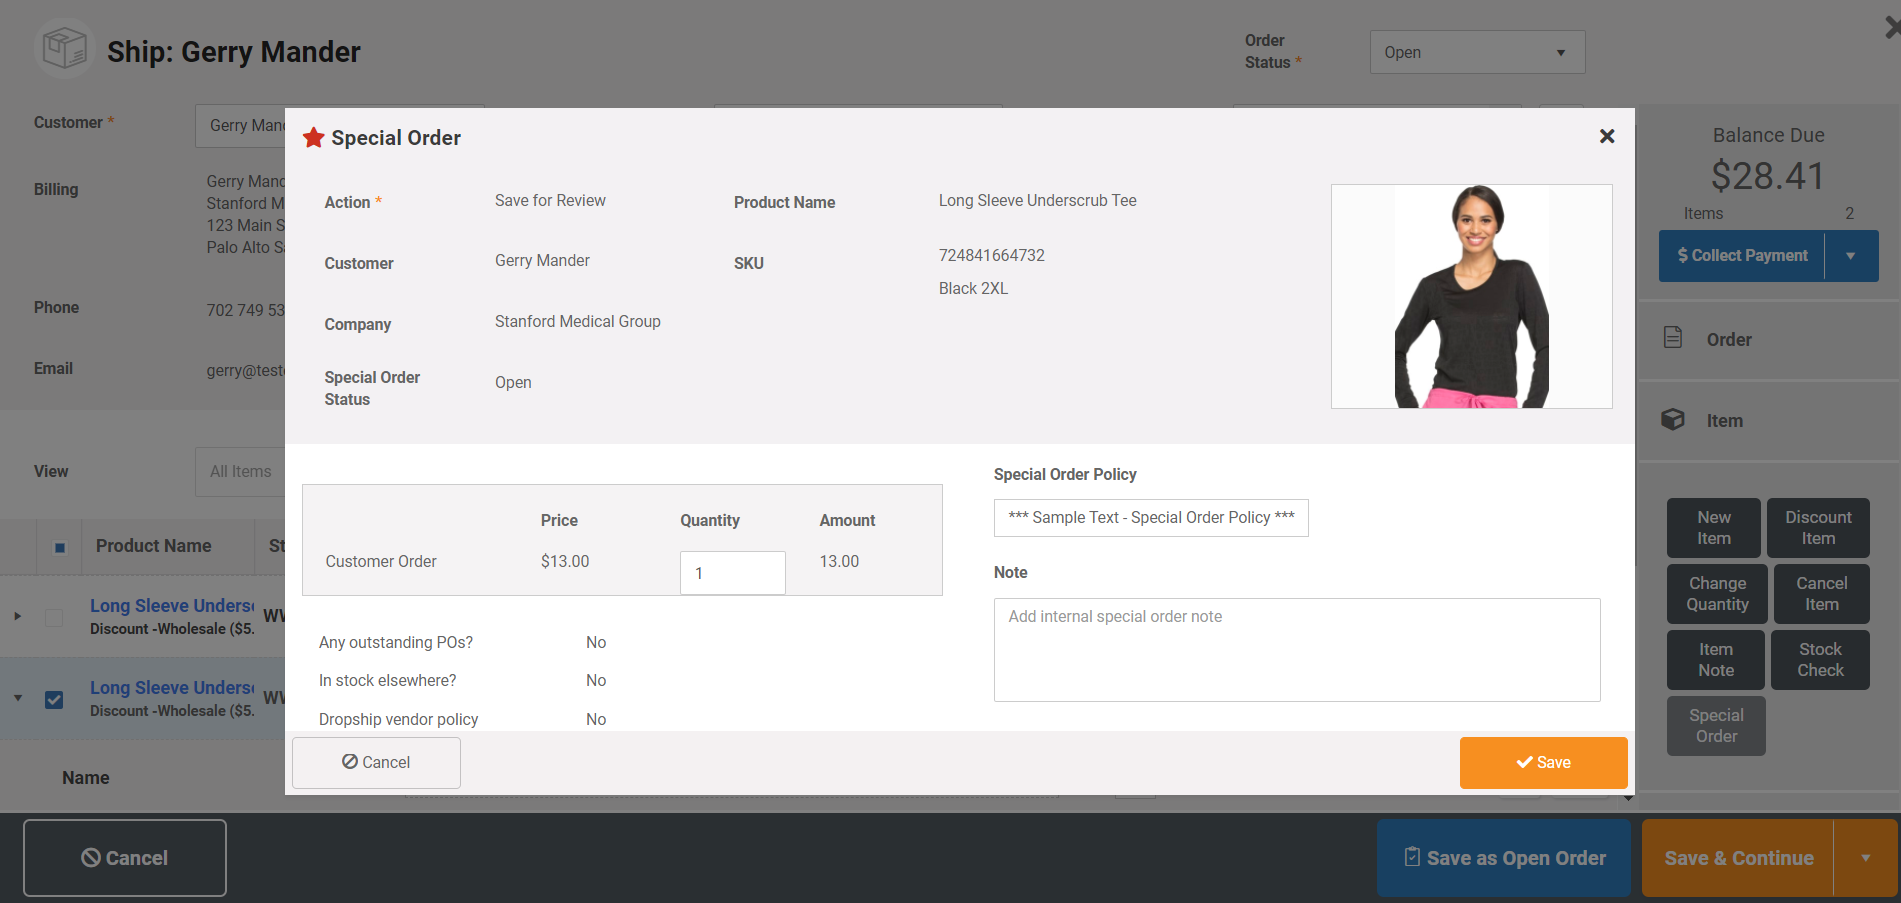 Manage sales of items not in stock that need to be special ordered from vendor. Special order items are tagged through the ordering and fulfillment process, so that they can be treated differently than standard items in PO's and vendor shipments.